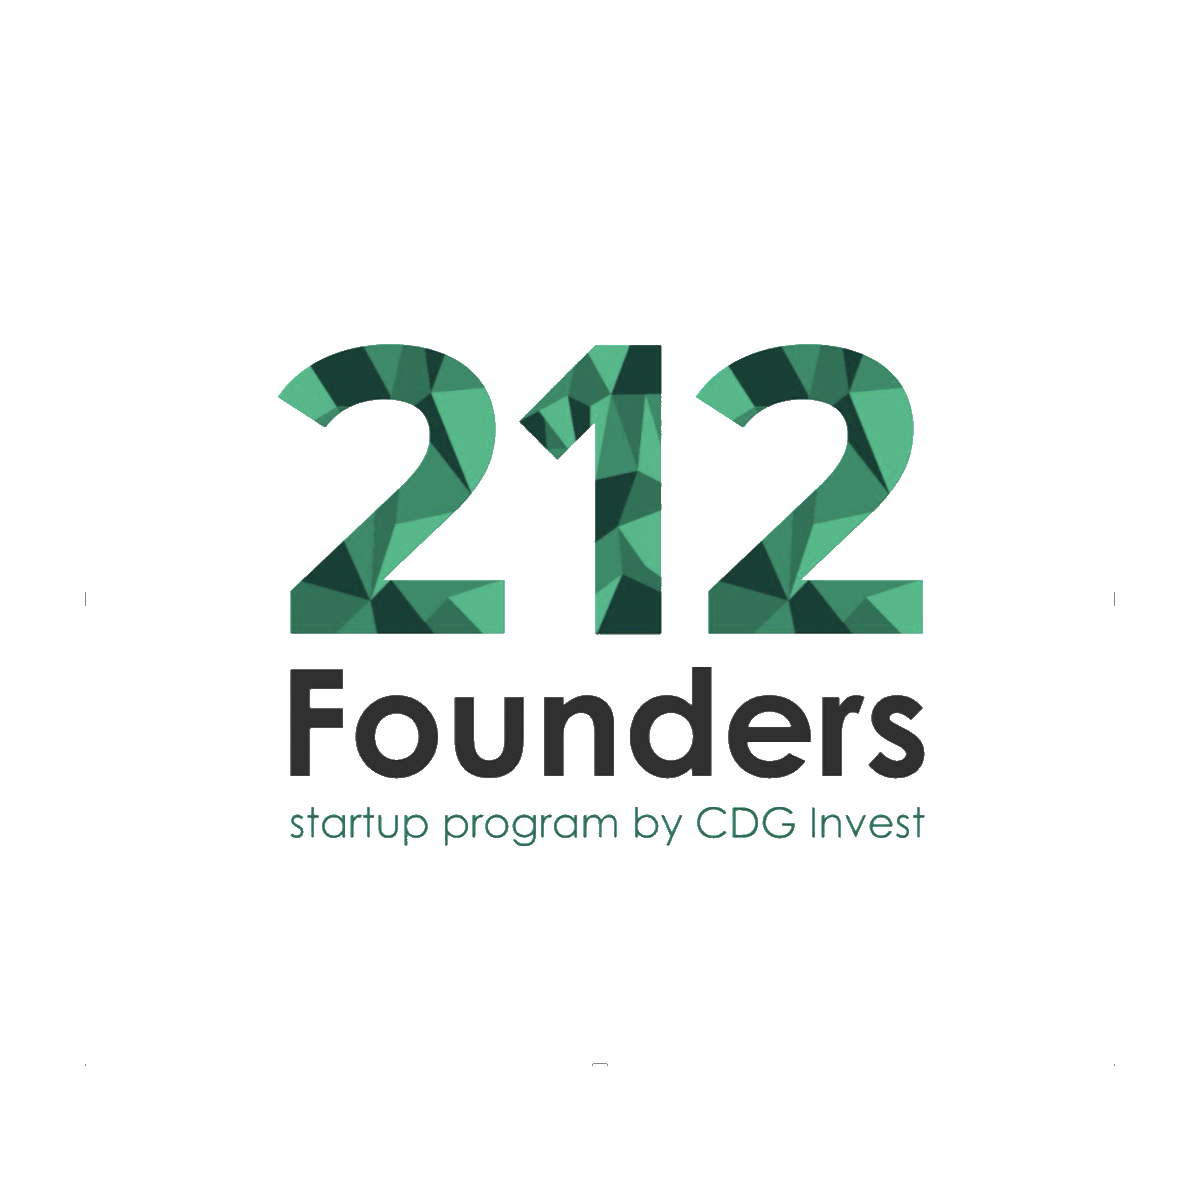 212 founders-organismes de financement-start-up.ma